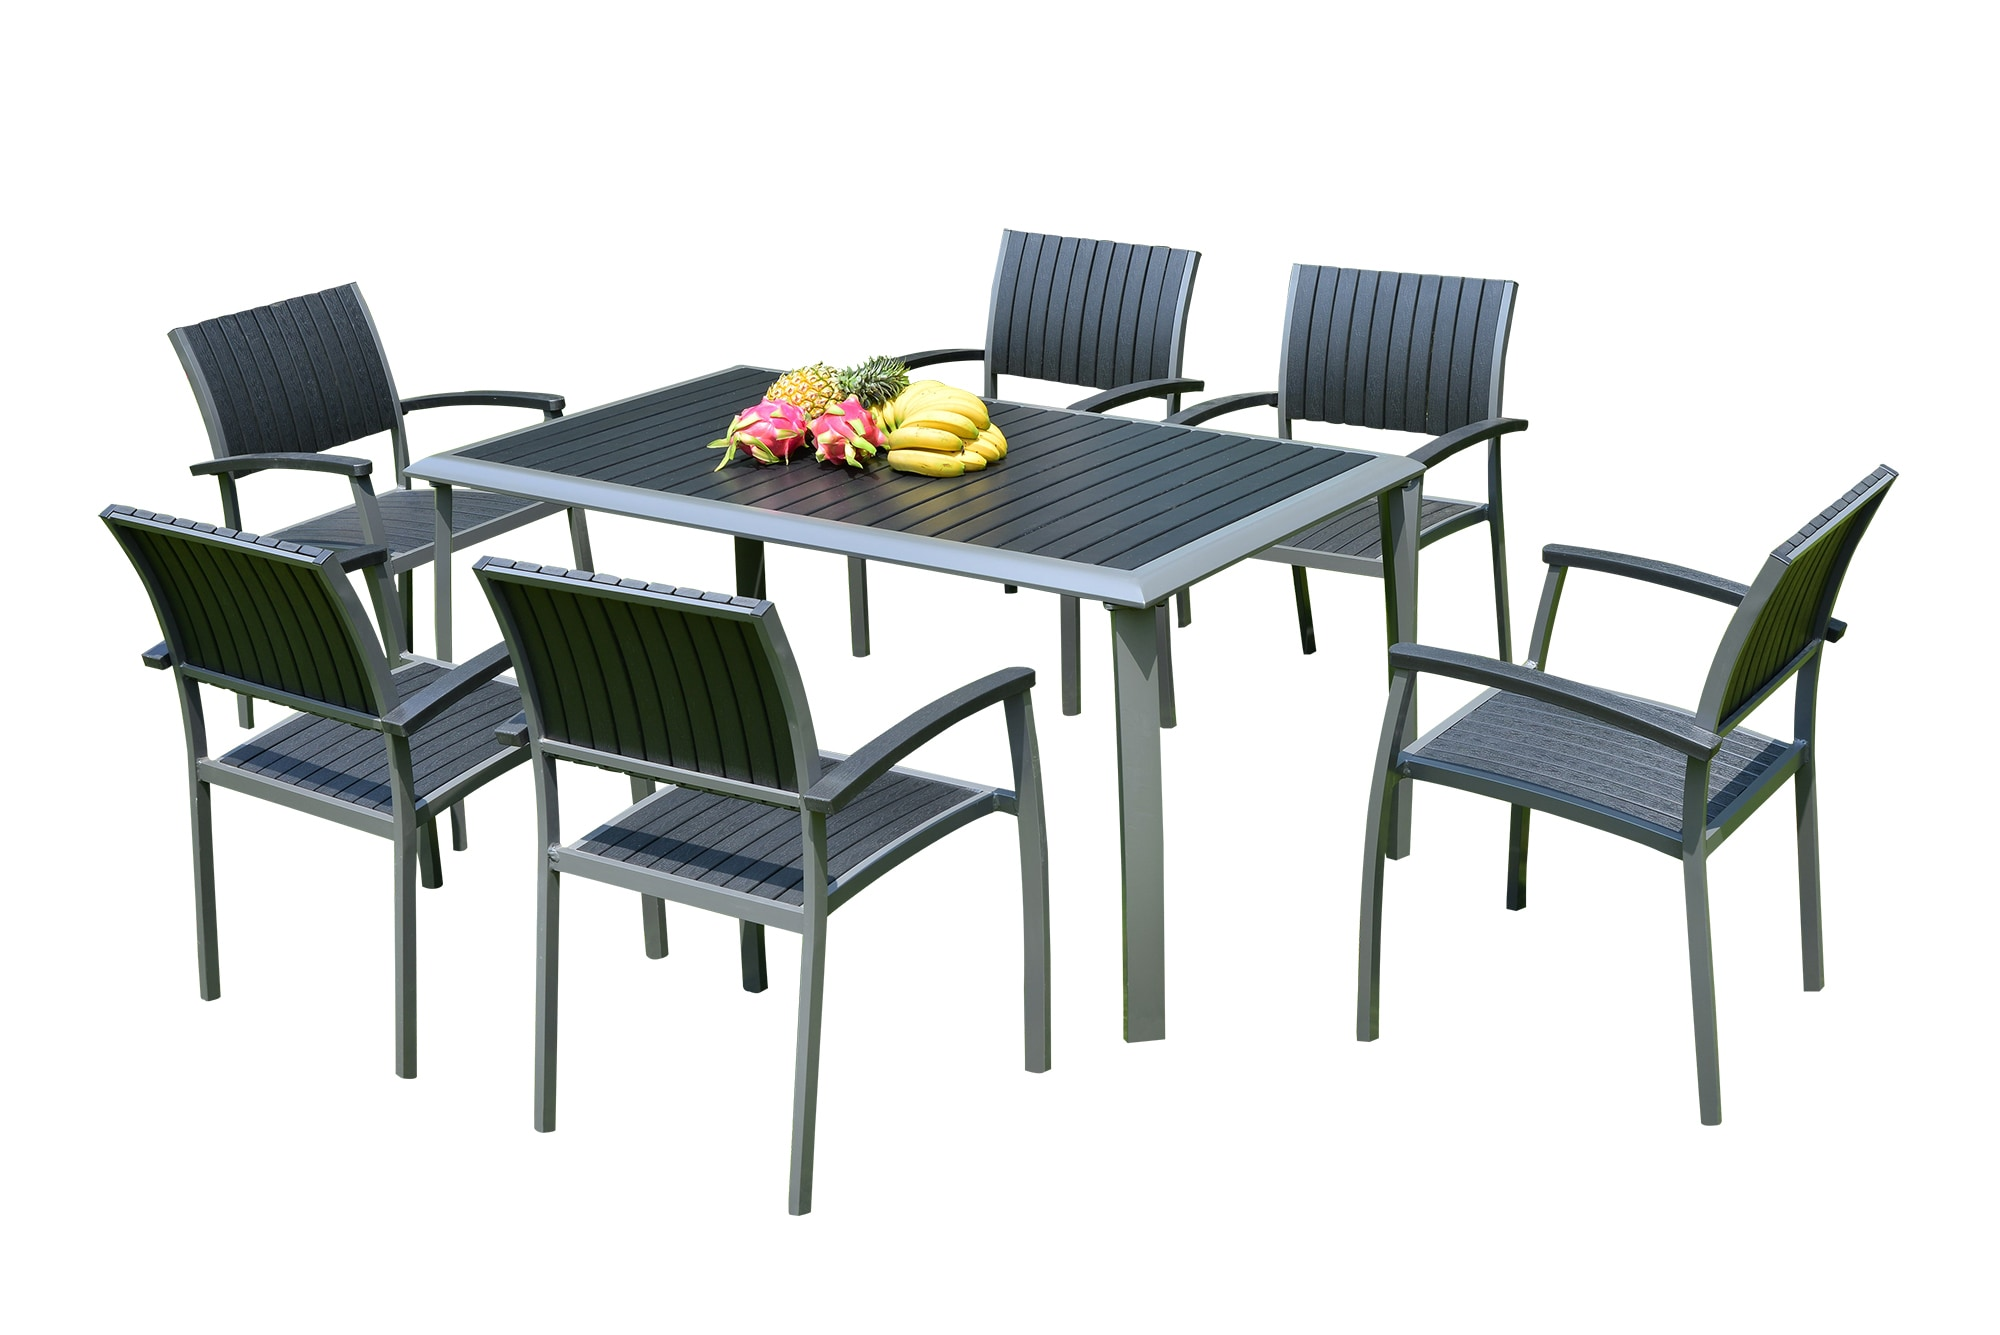 Kontiki Dining Sets posite Medium Ideal for 6 Seats Bow Wood posite